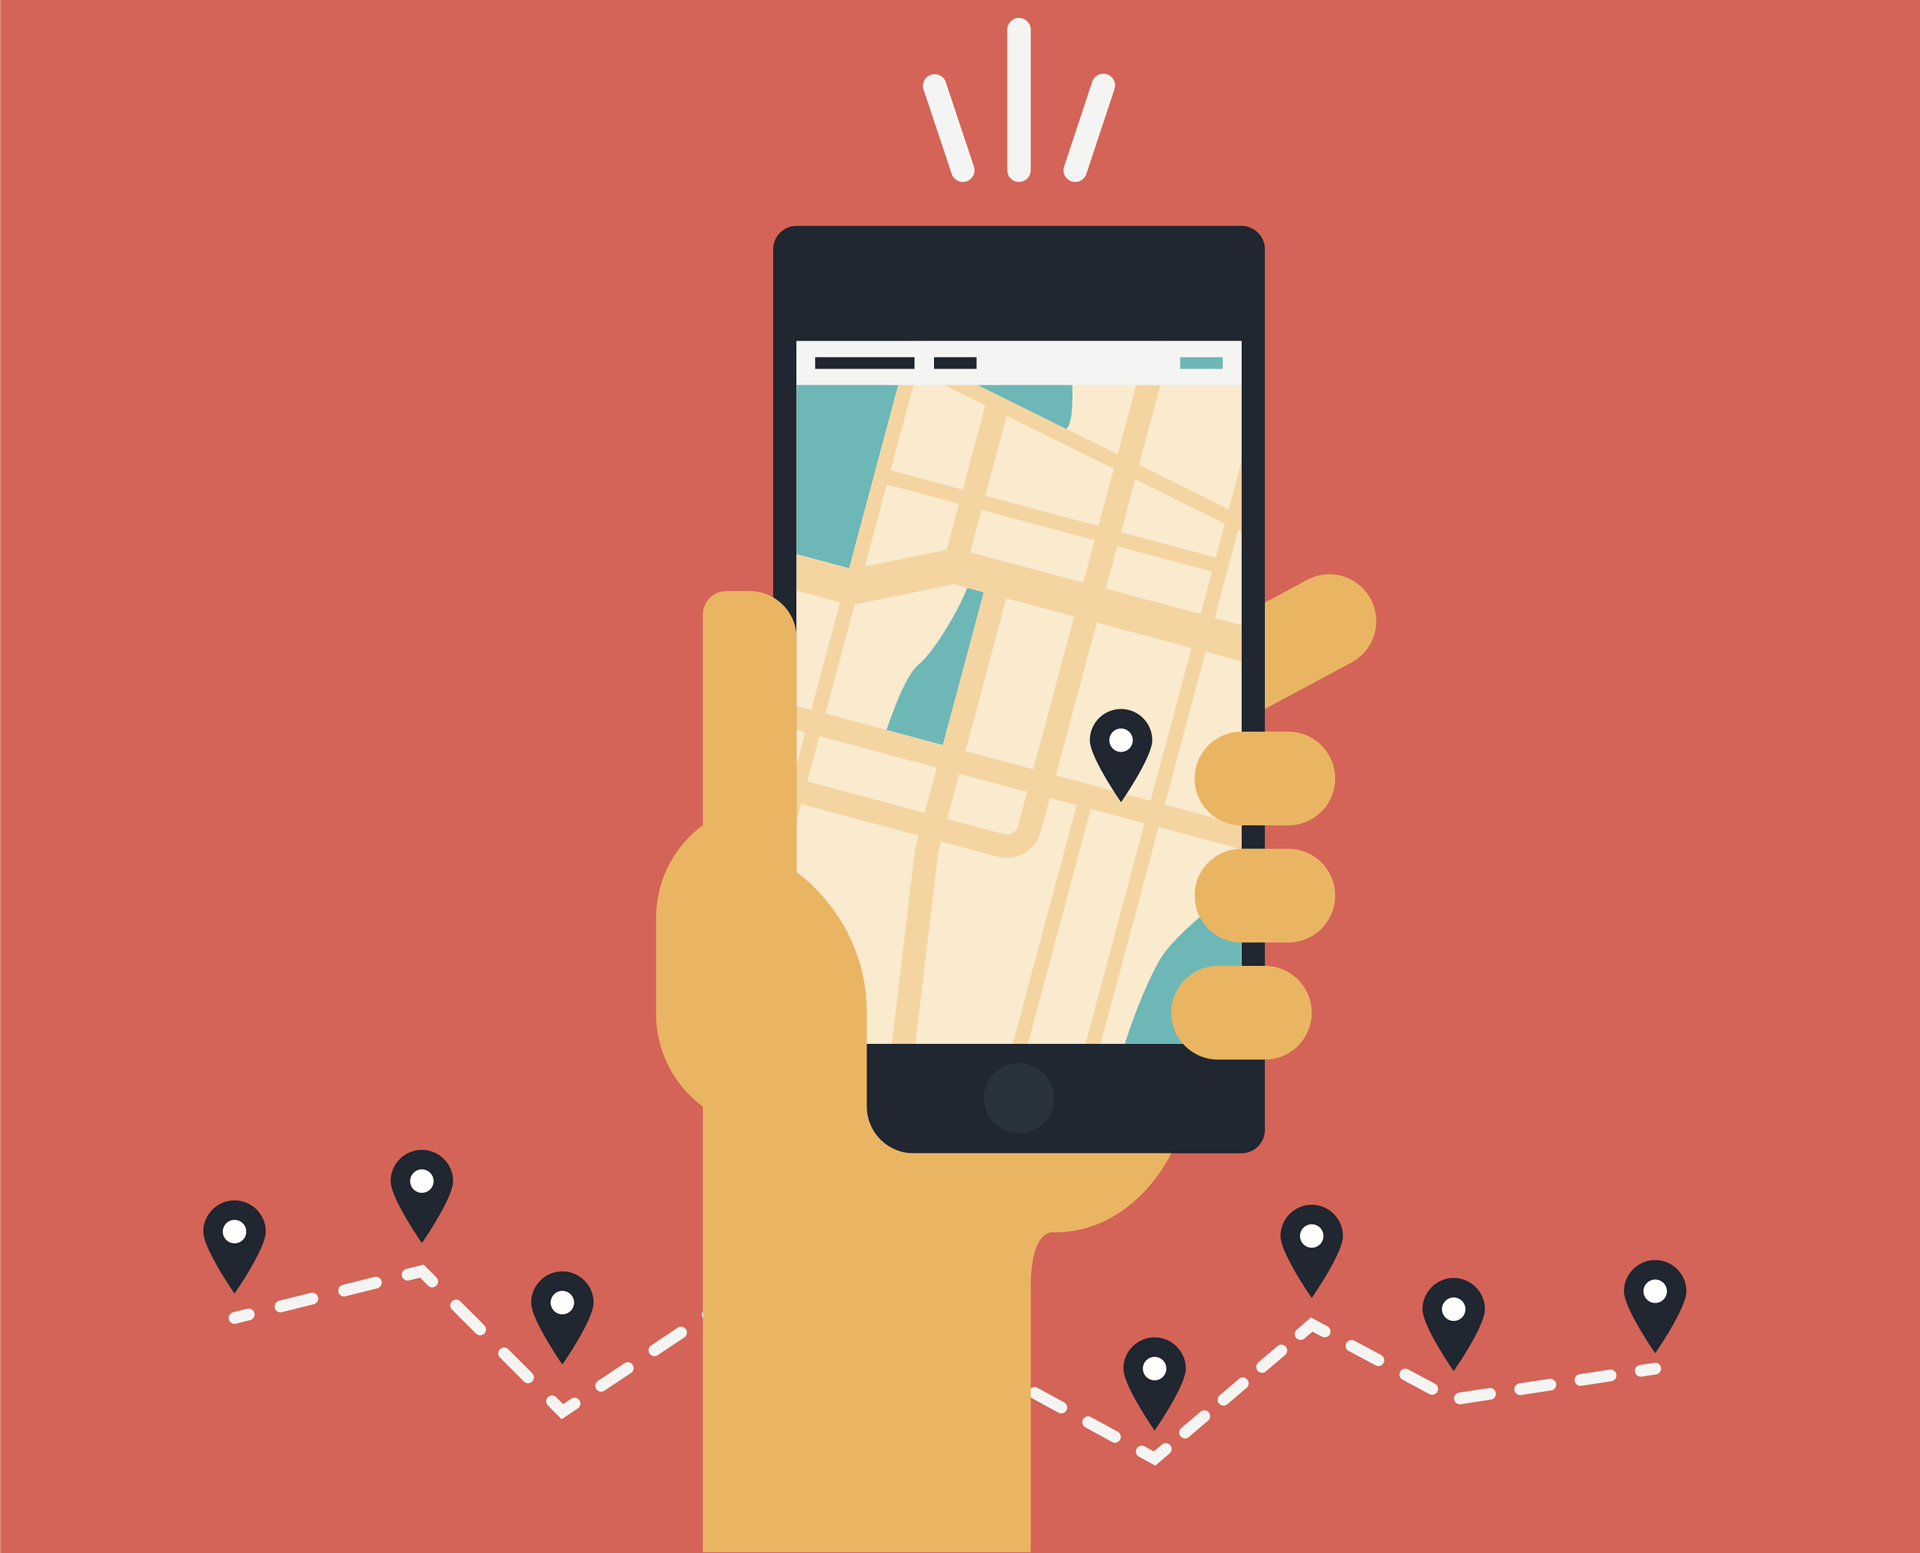 How to track a phone using phone tracker without letting them know it